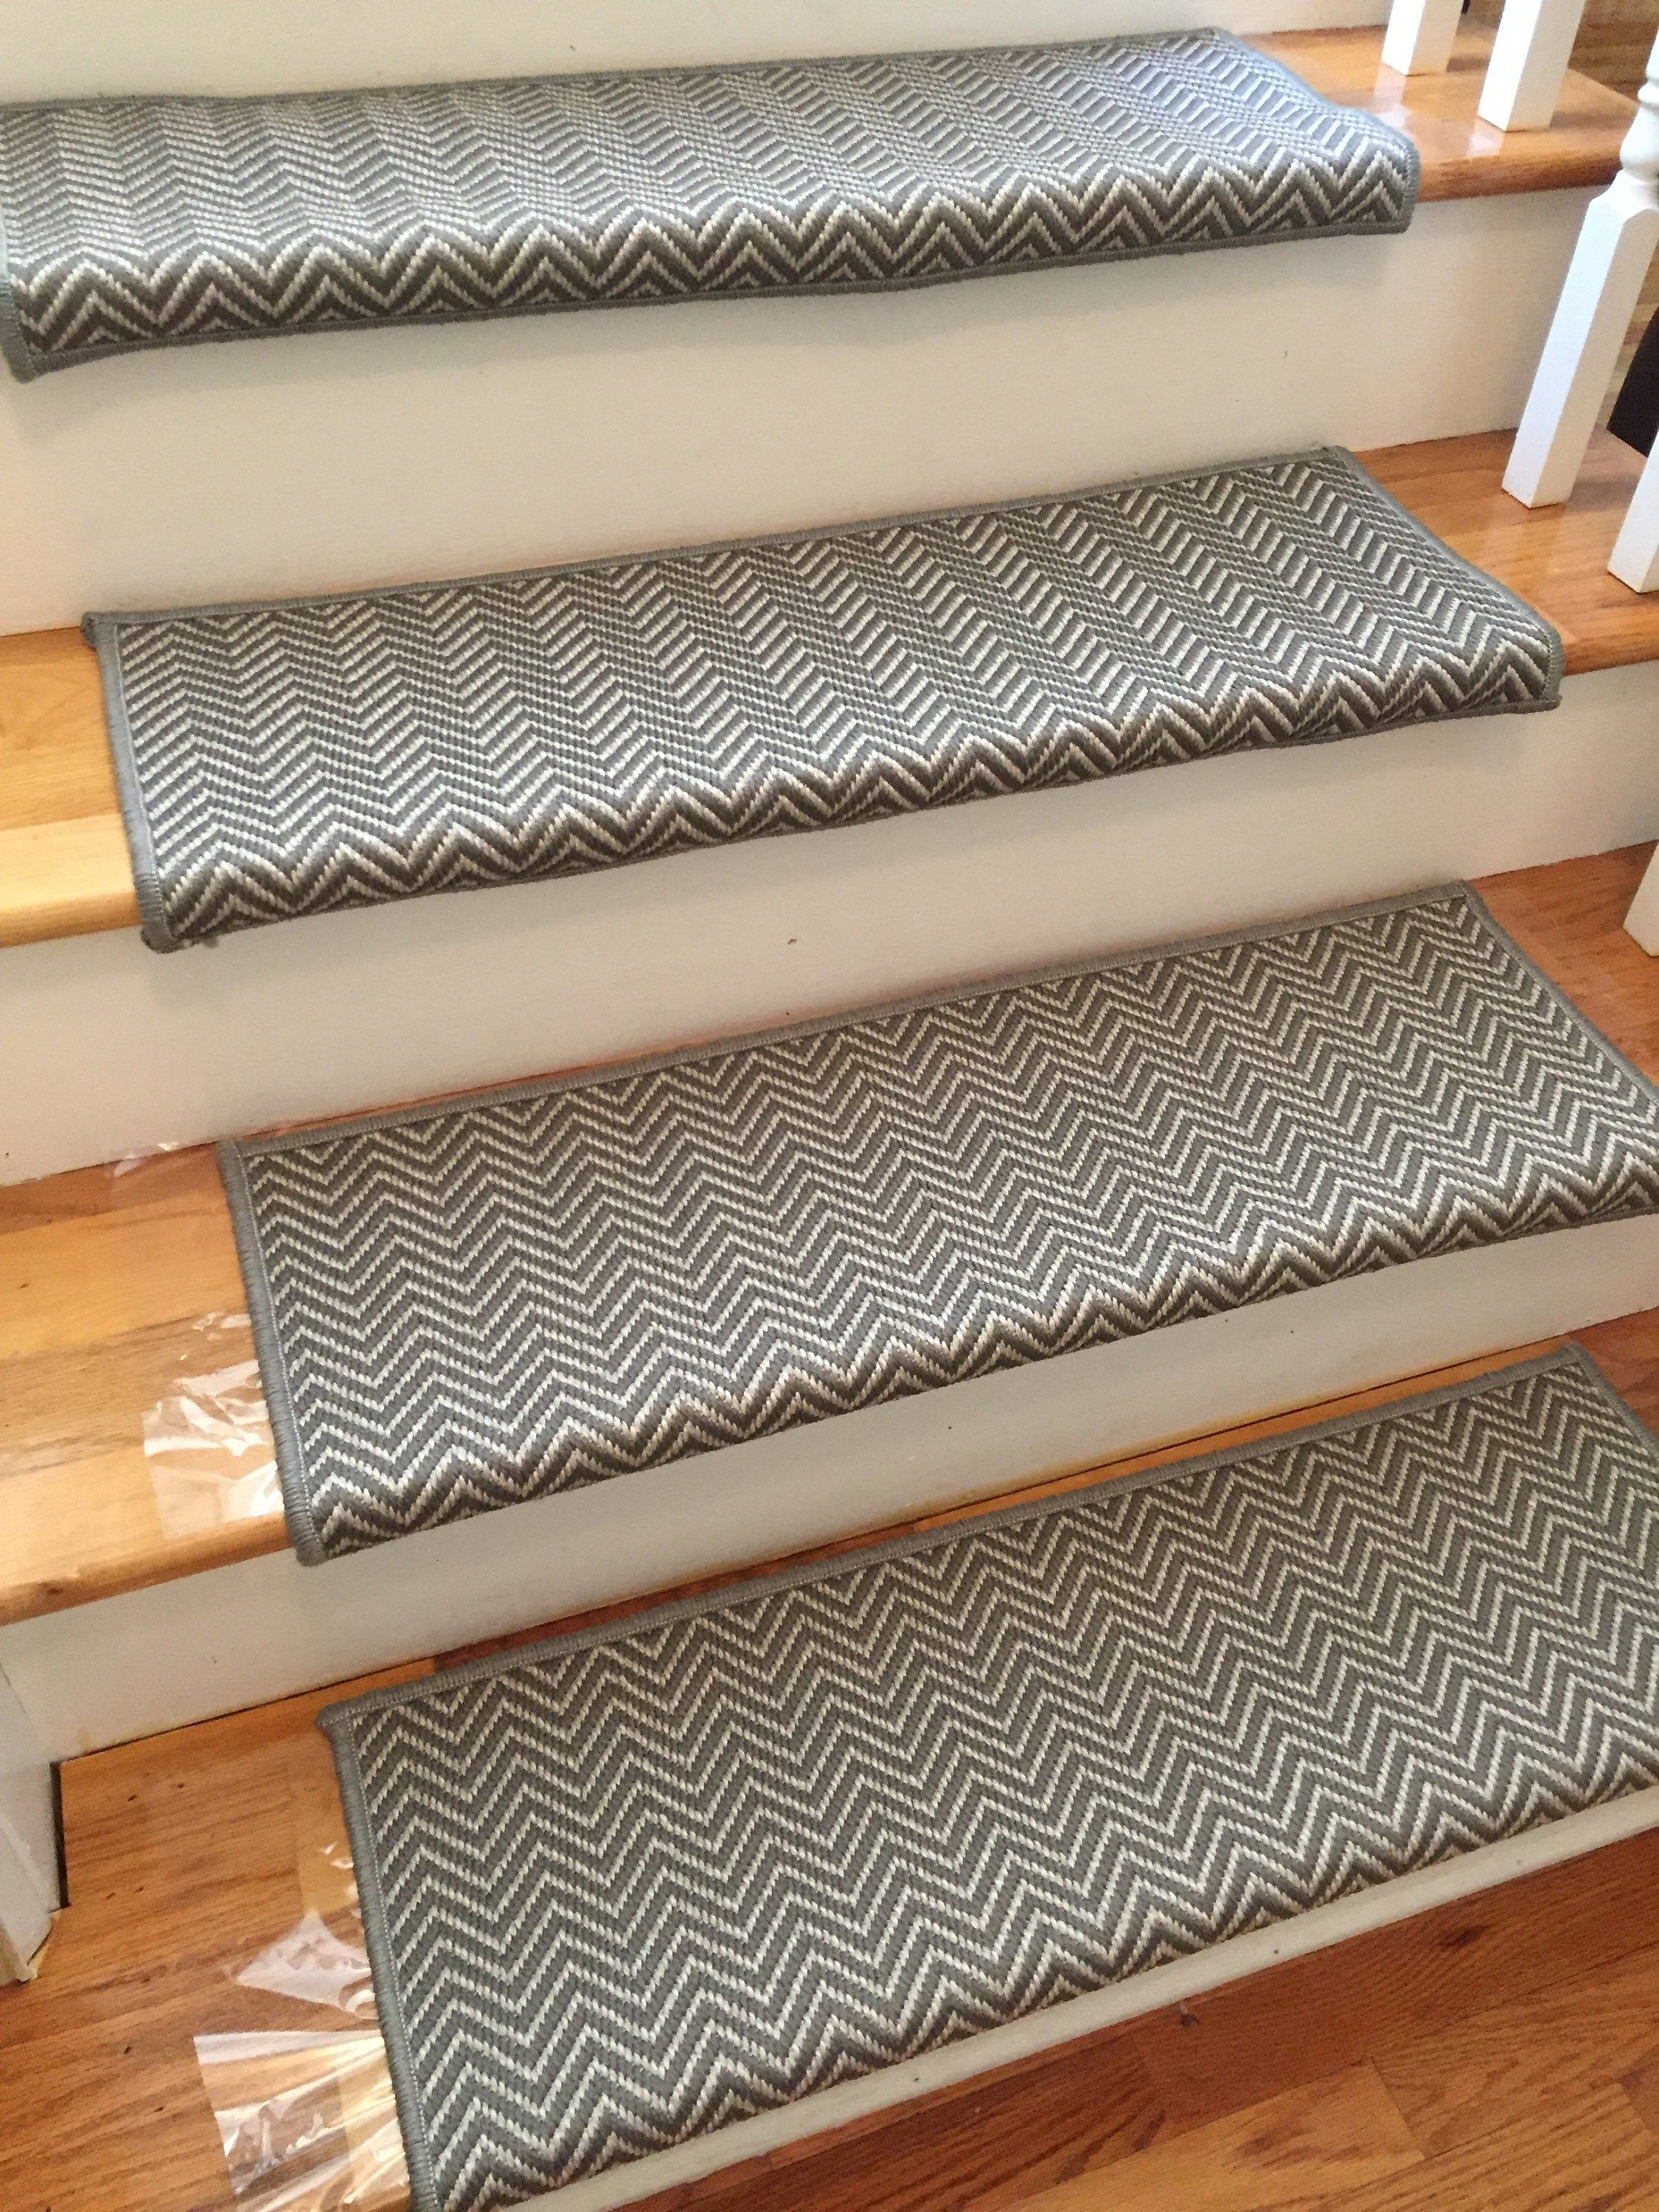 Hatteras Sandpiper B Flatweave 100 Uv Stable True Bullnose Padded Carpet Stair Tread Runner Replacement Style Comfort Safety Sold Each Carpet Stair Treads Carpet Stairs Stair Runner Carpet